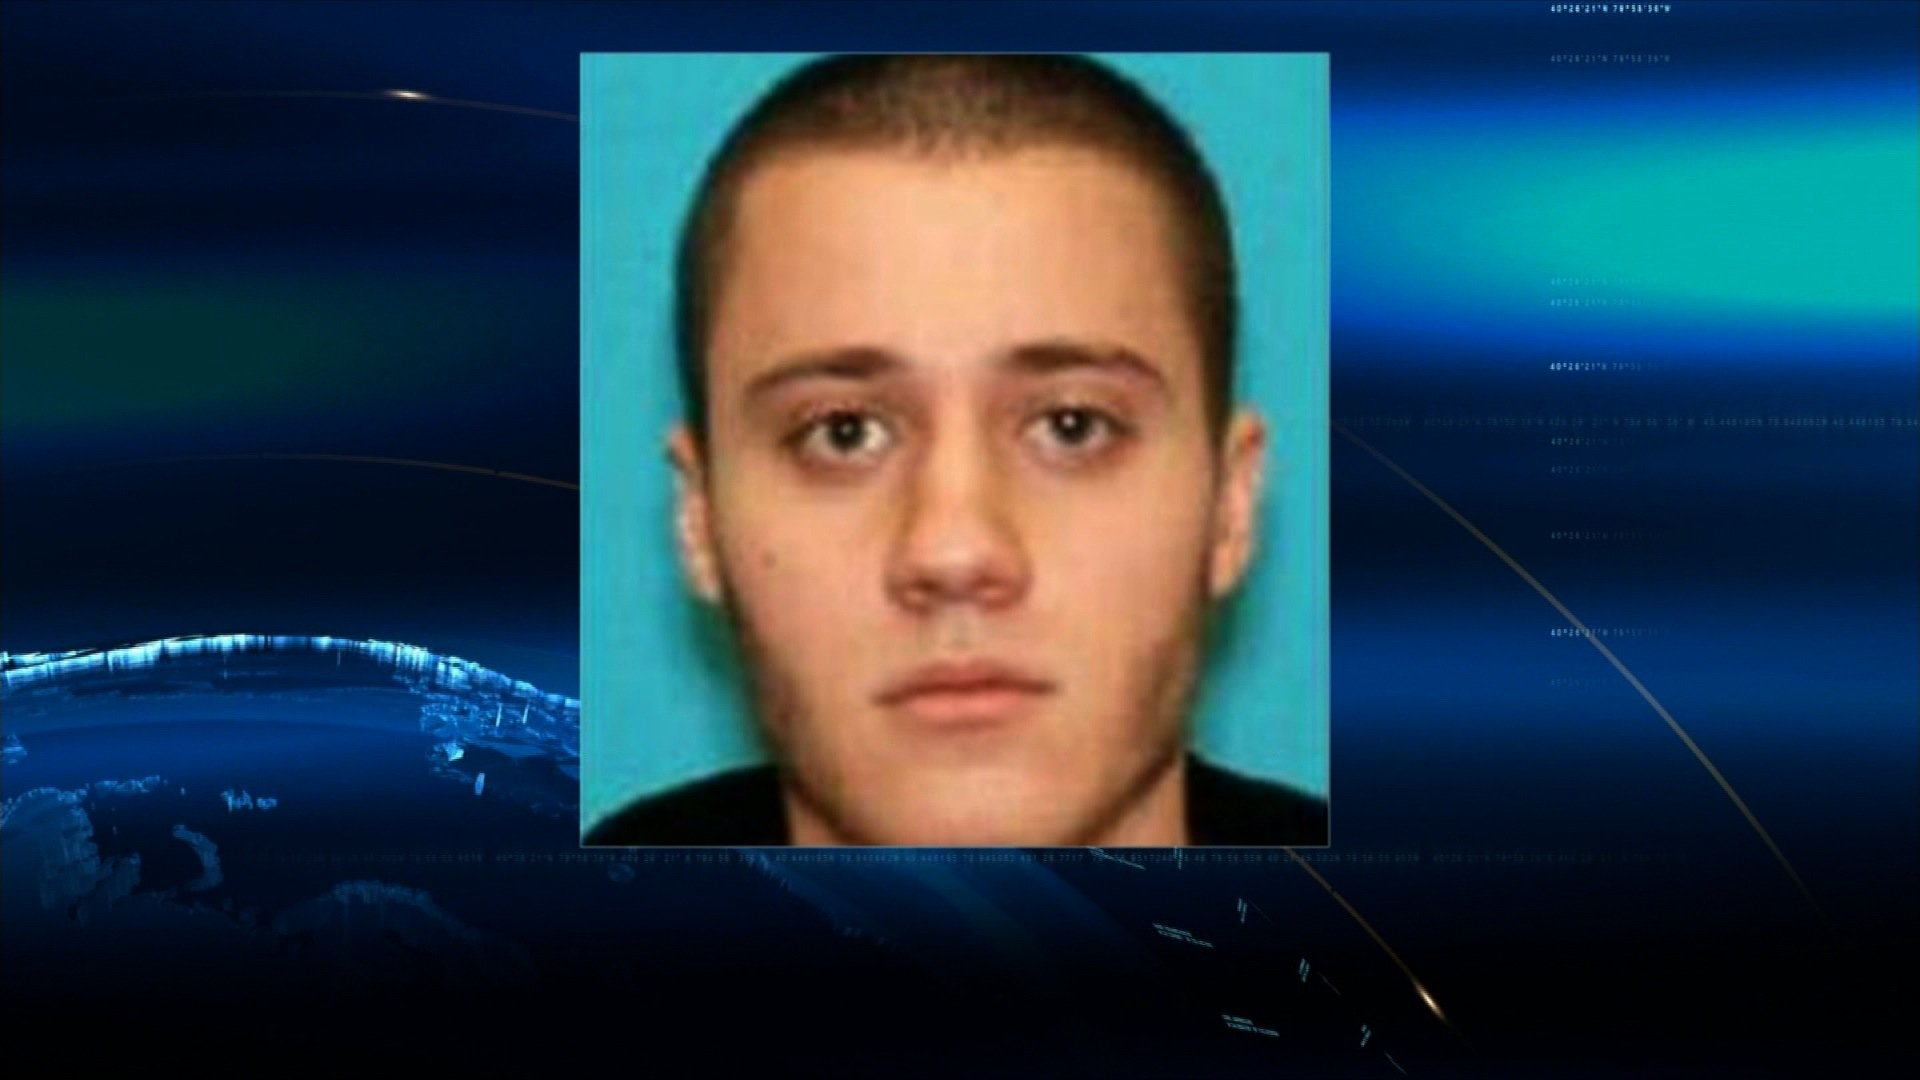 The FBI identifies the suspect in the LAX shooting Friday, November 1, 2013, as Paul Anthony Ciancia, 23, of Los Angeles, CA